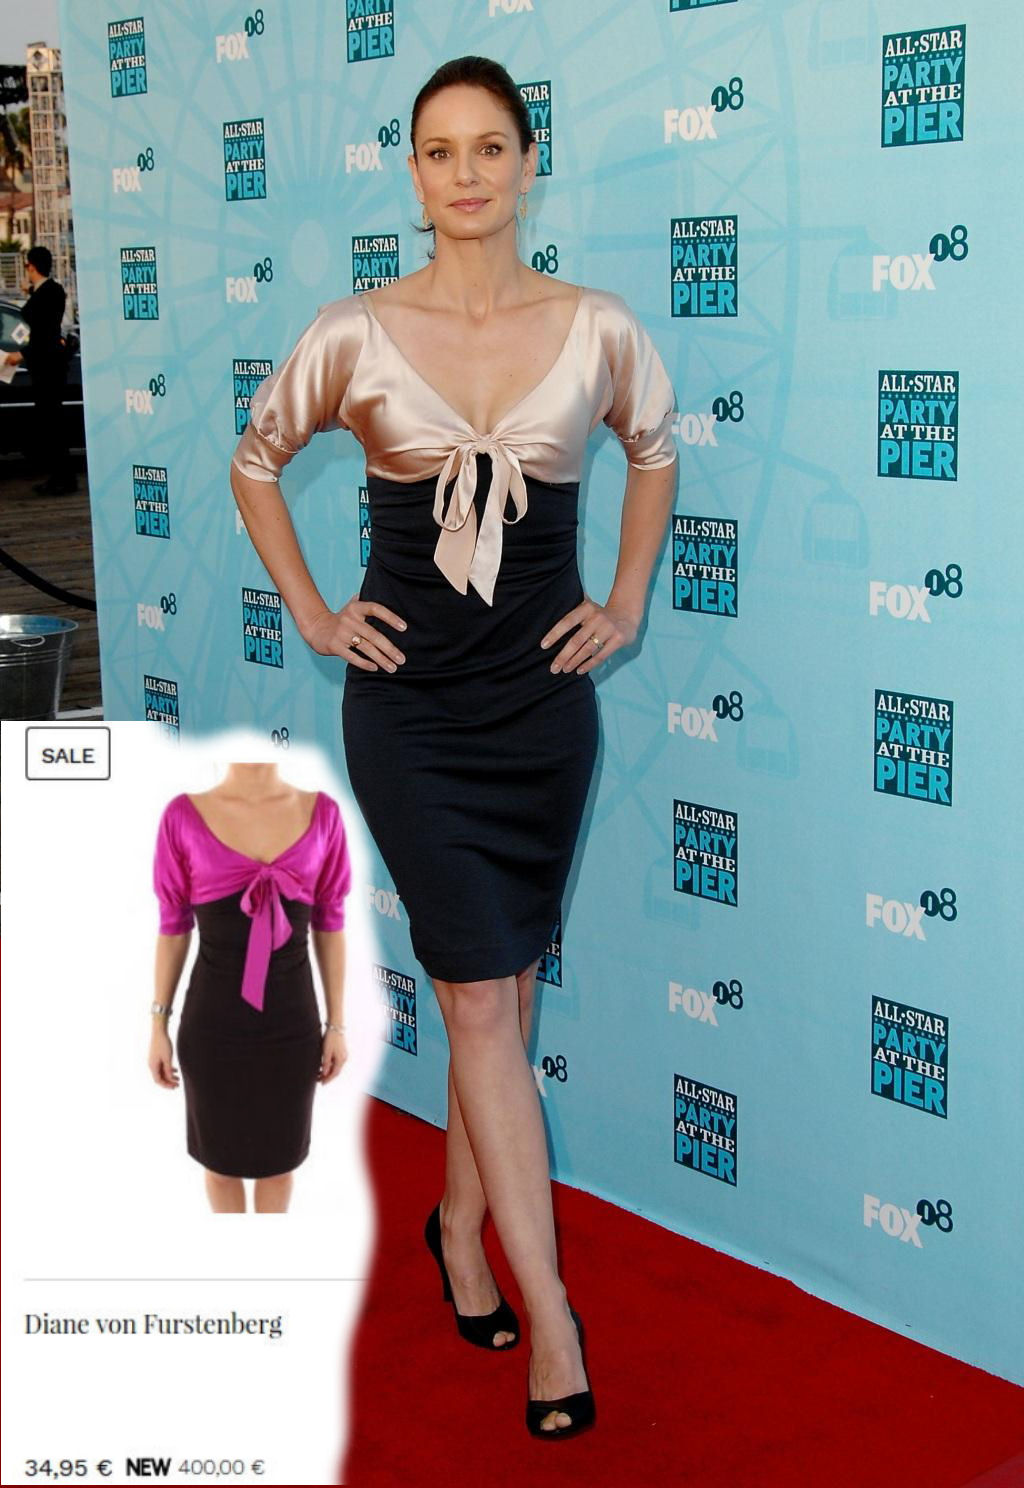 Sarah Wayne Callies > Dress: Diane von Furstenberg